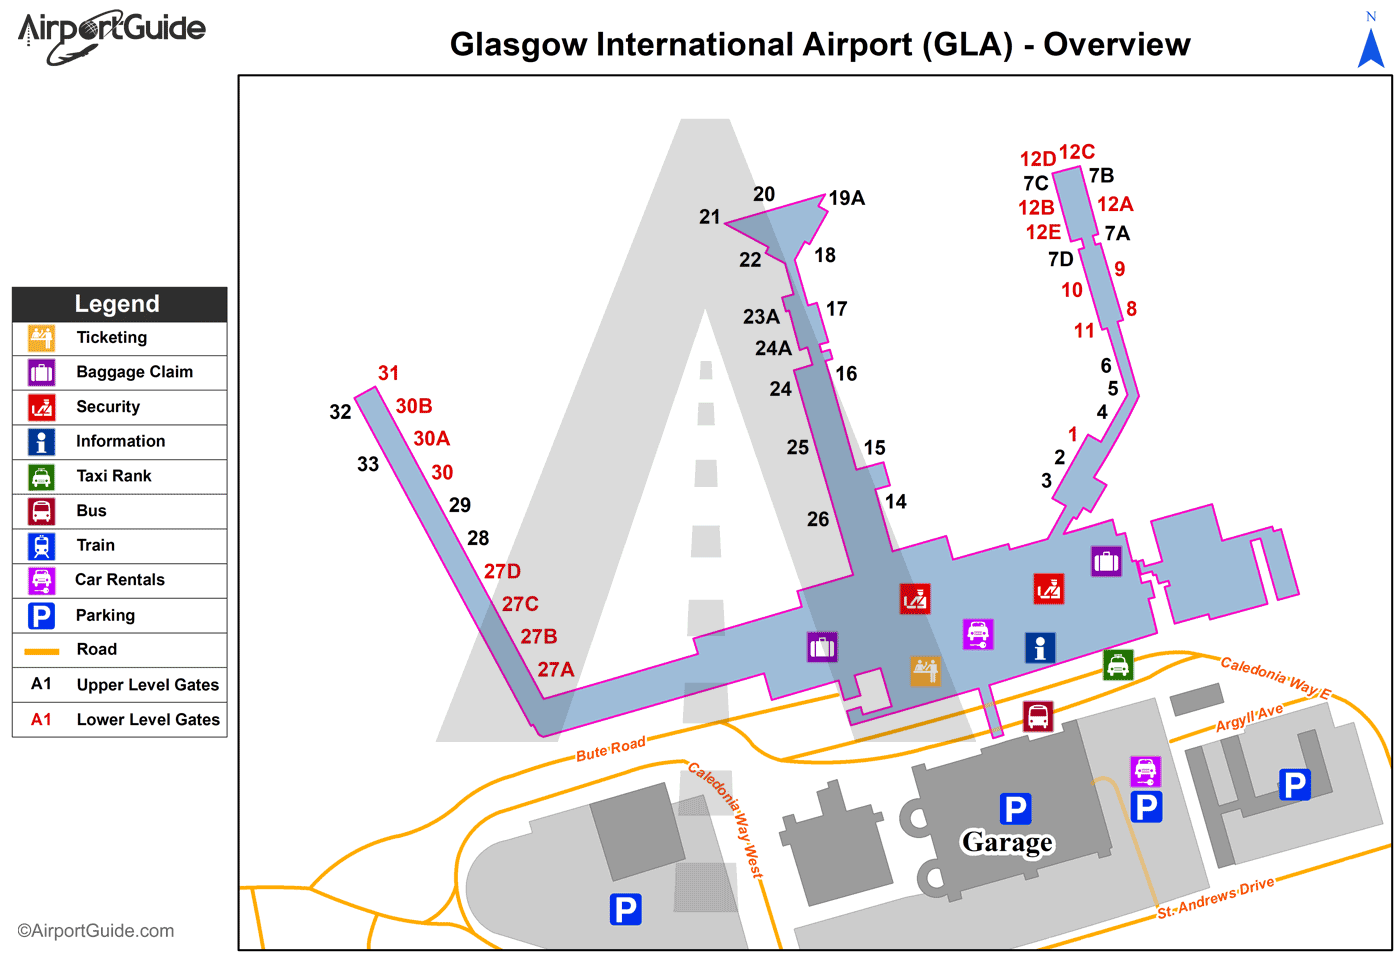 Glasgow - Glasgow International (GLA) Airport Terminal Map - Overview